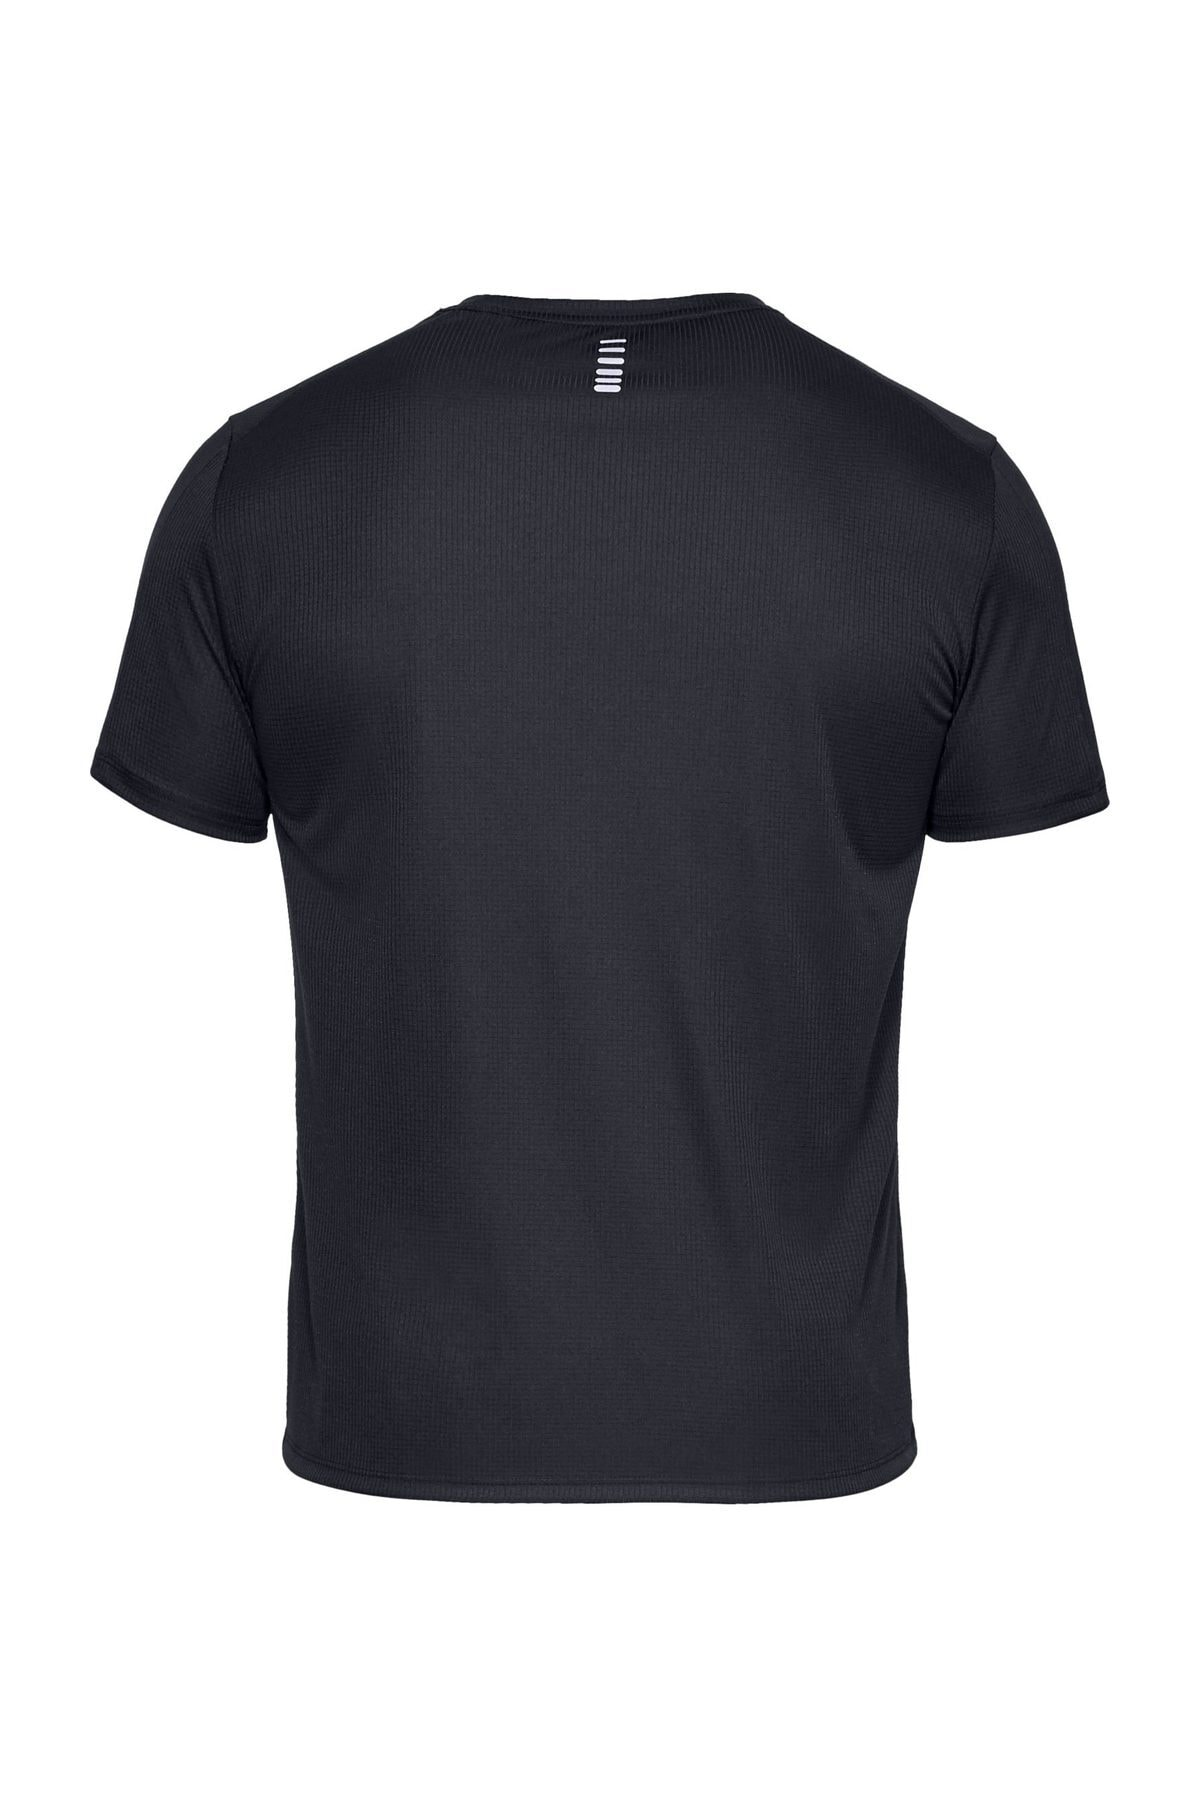 Under Armour Erkek Spor T-Shirt - UA Speed Stride Shortsleeve - 1326564-001 2